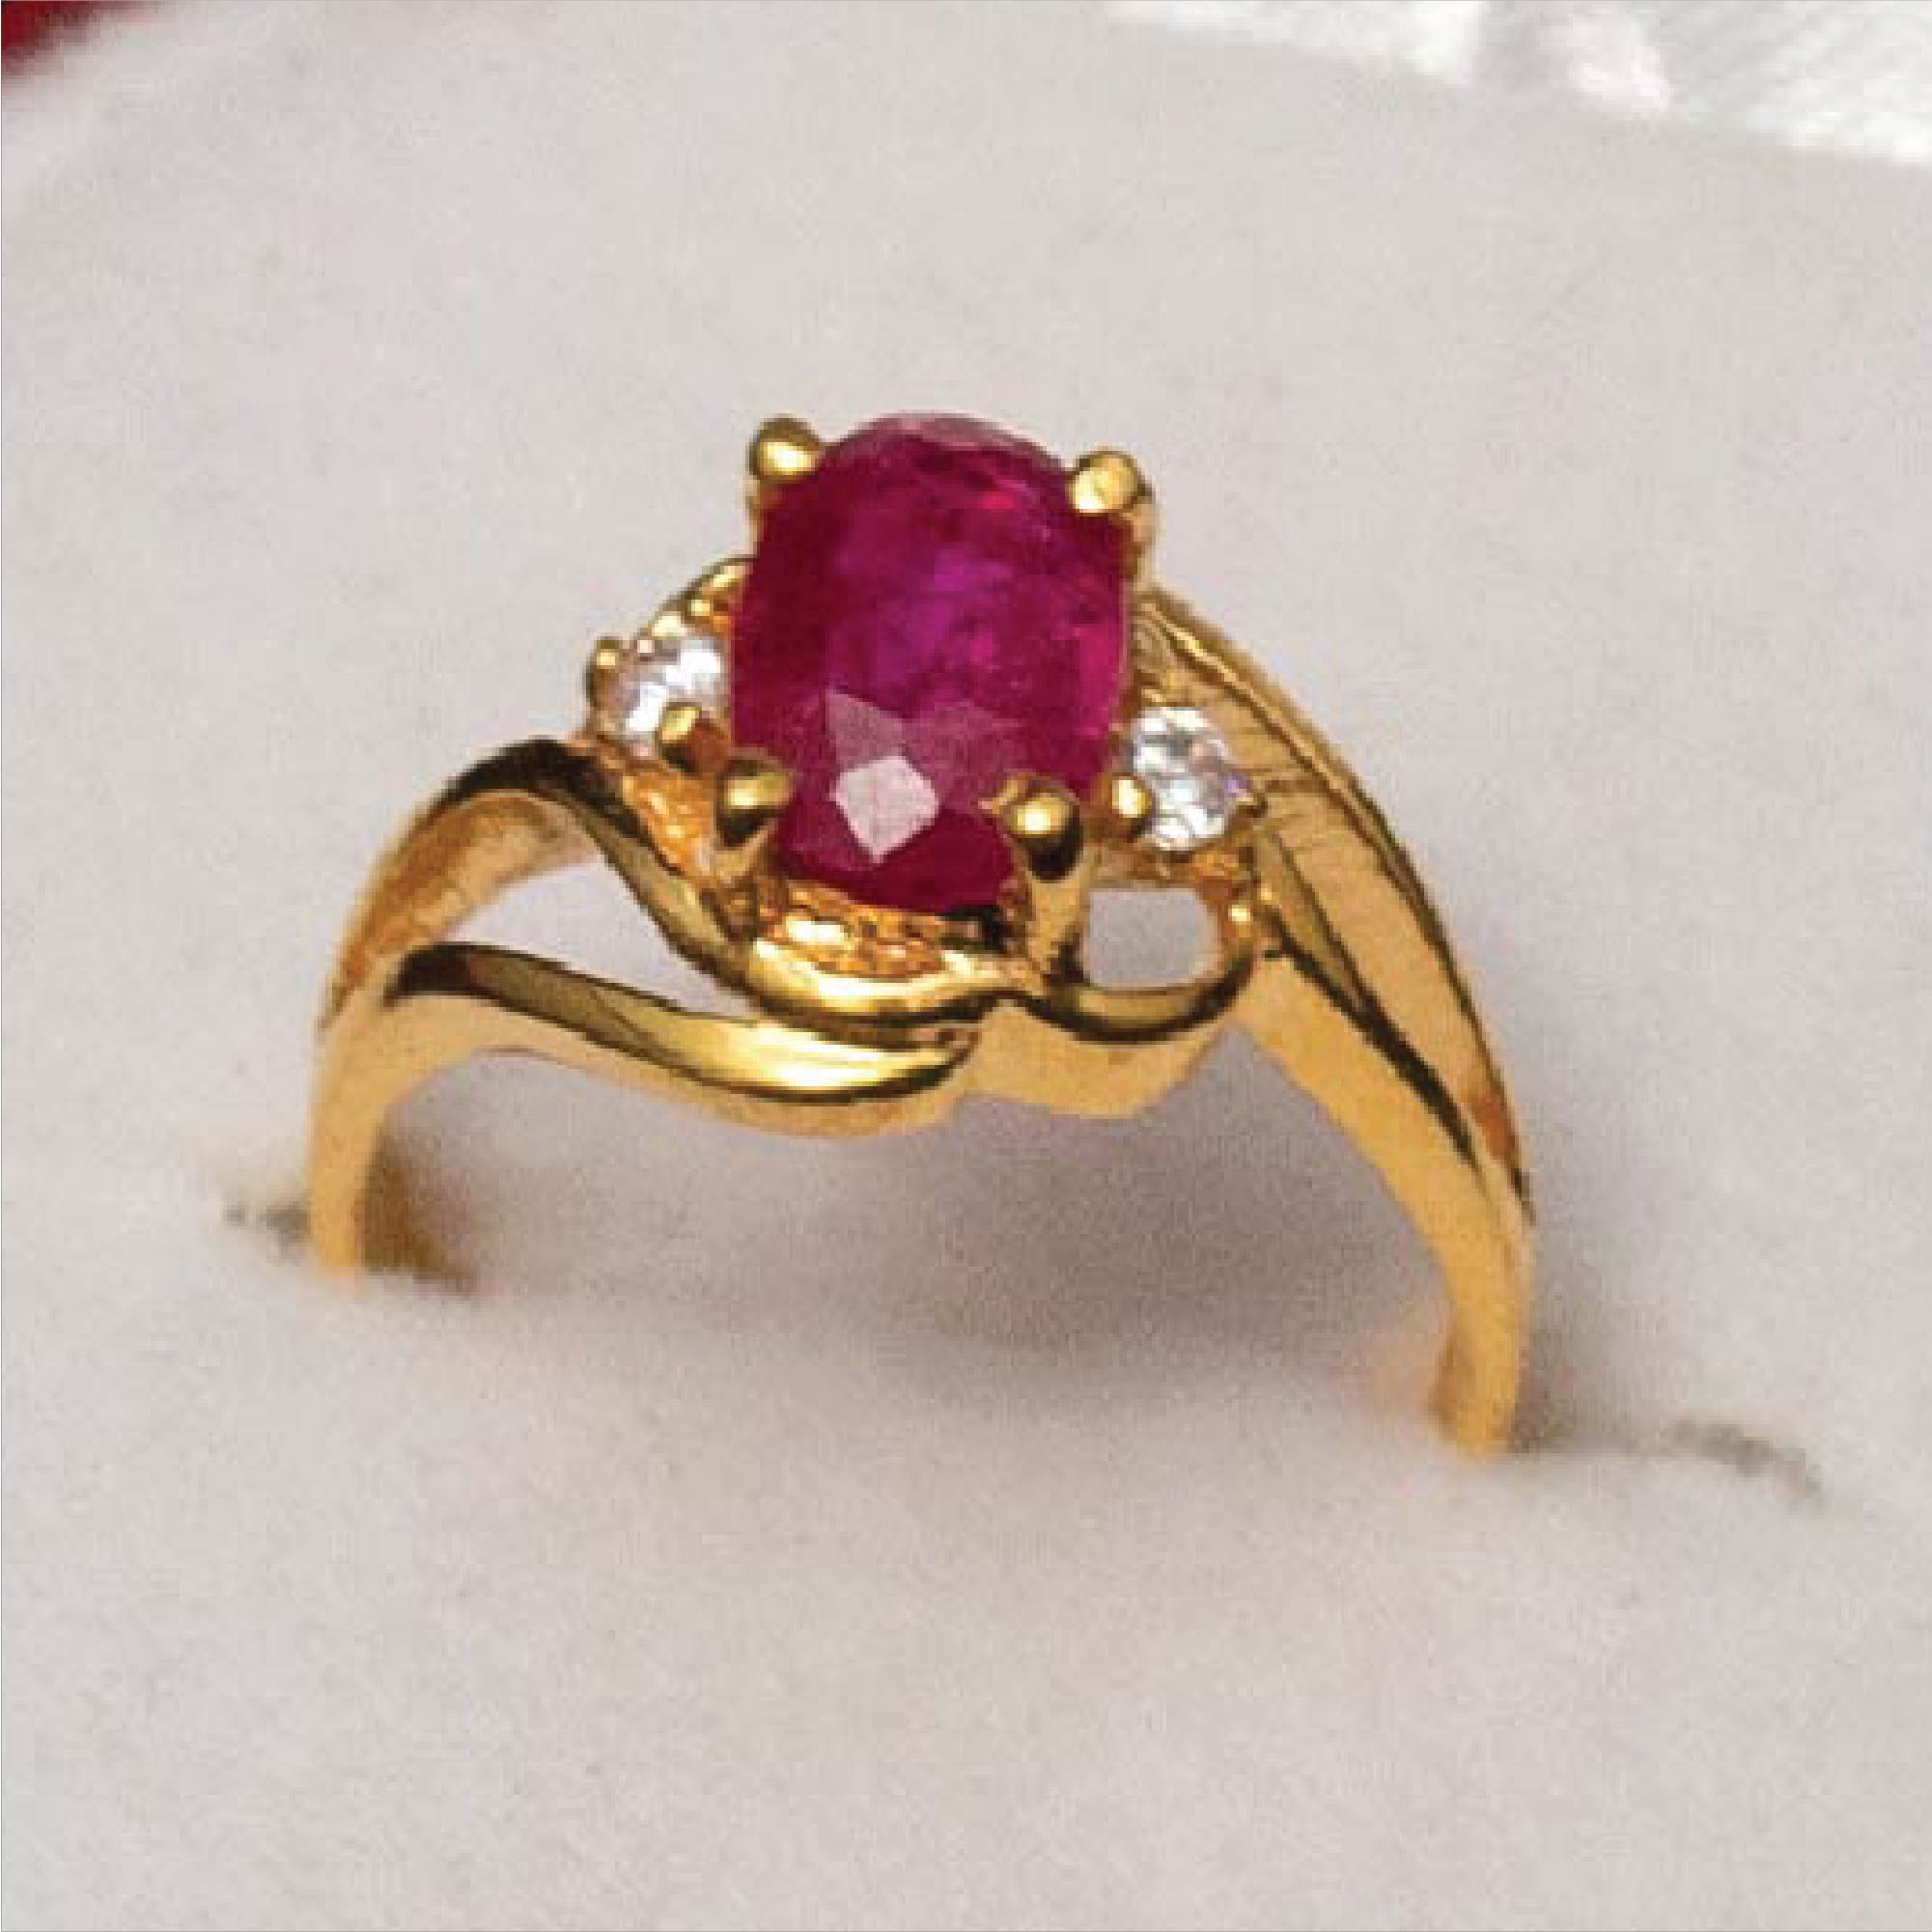 Bridal Ring with Ruby